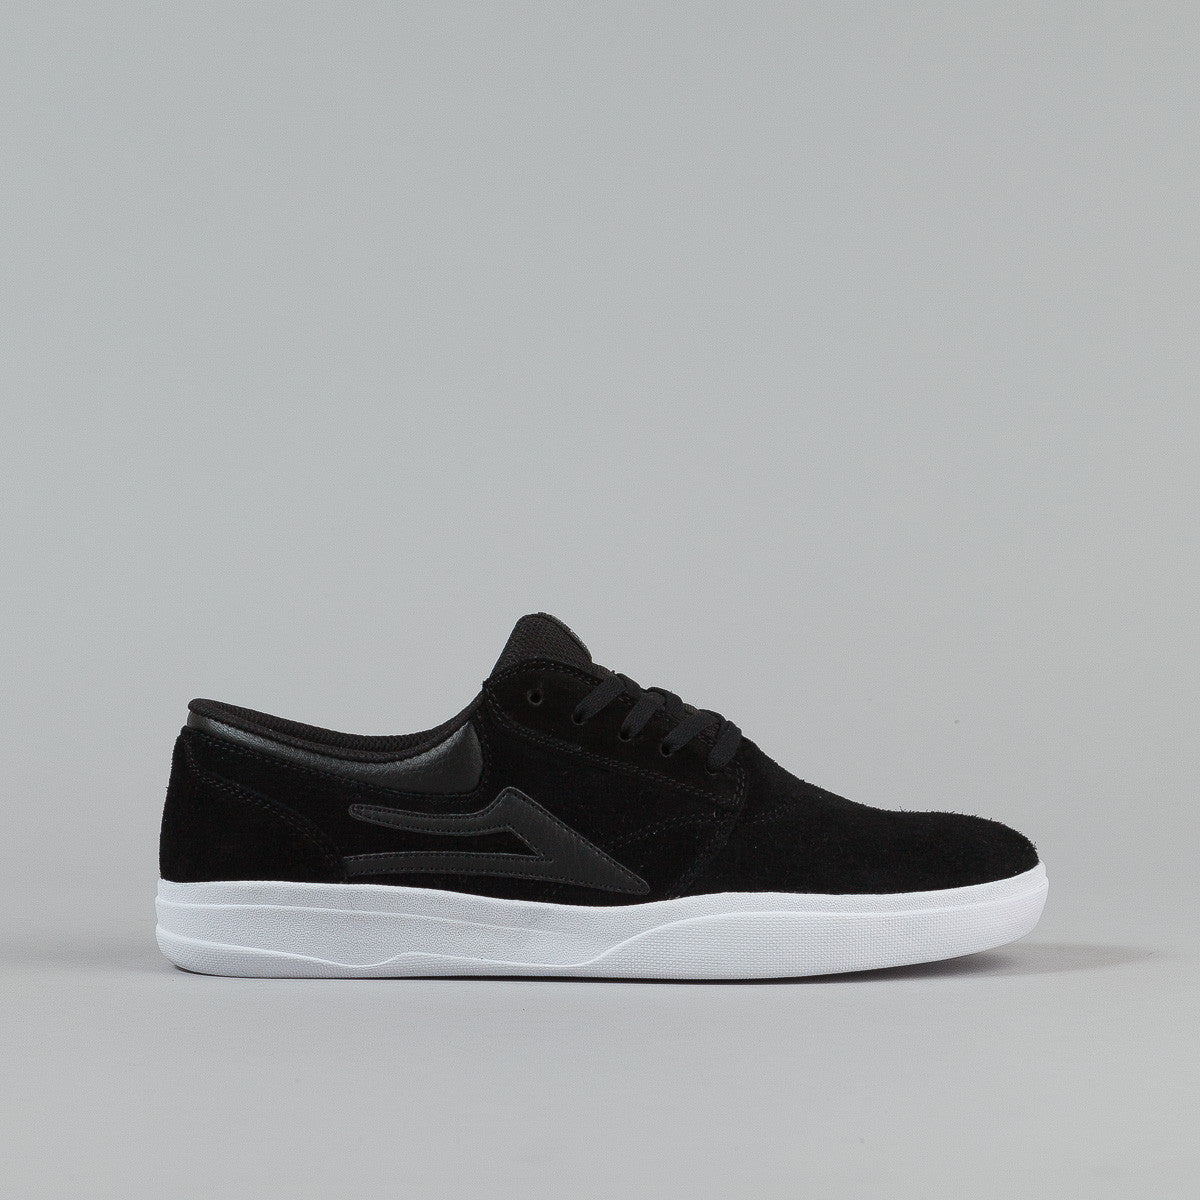 Lakai Griffin XLK x Isle Shoes - Black / White